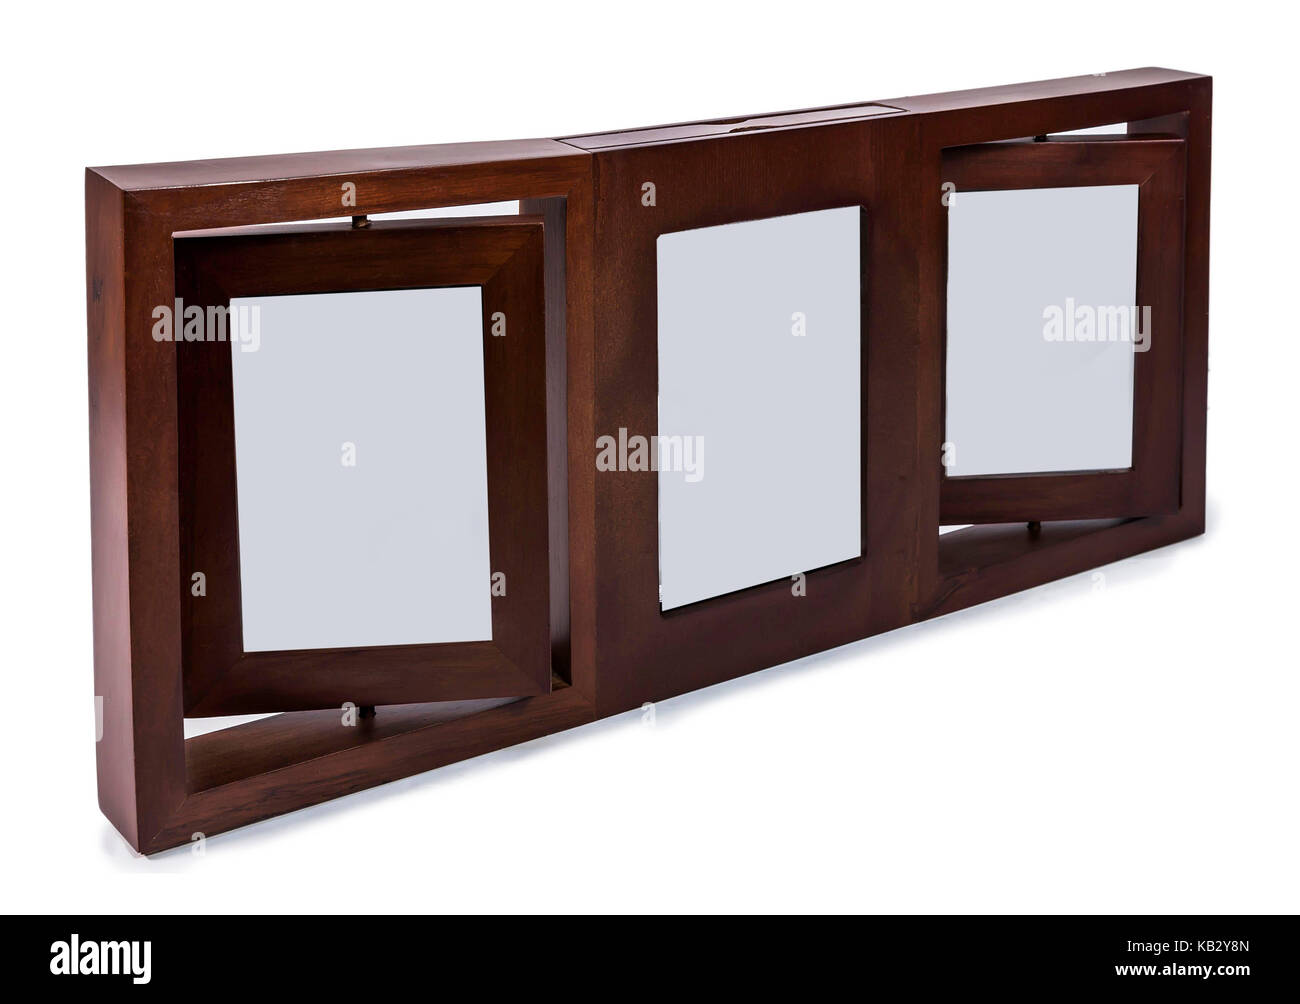 Brown wooden photo frame set 3 frame rotated in a plane isolated brown wooden photo frame set 3 frame rotated in a plane isolated on white background jeuxipadfo Gallery